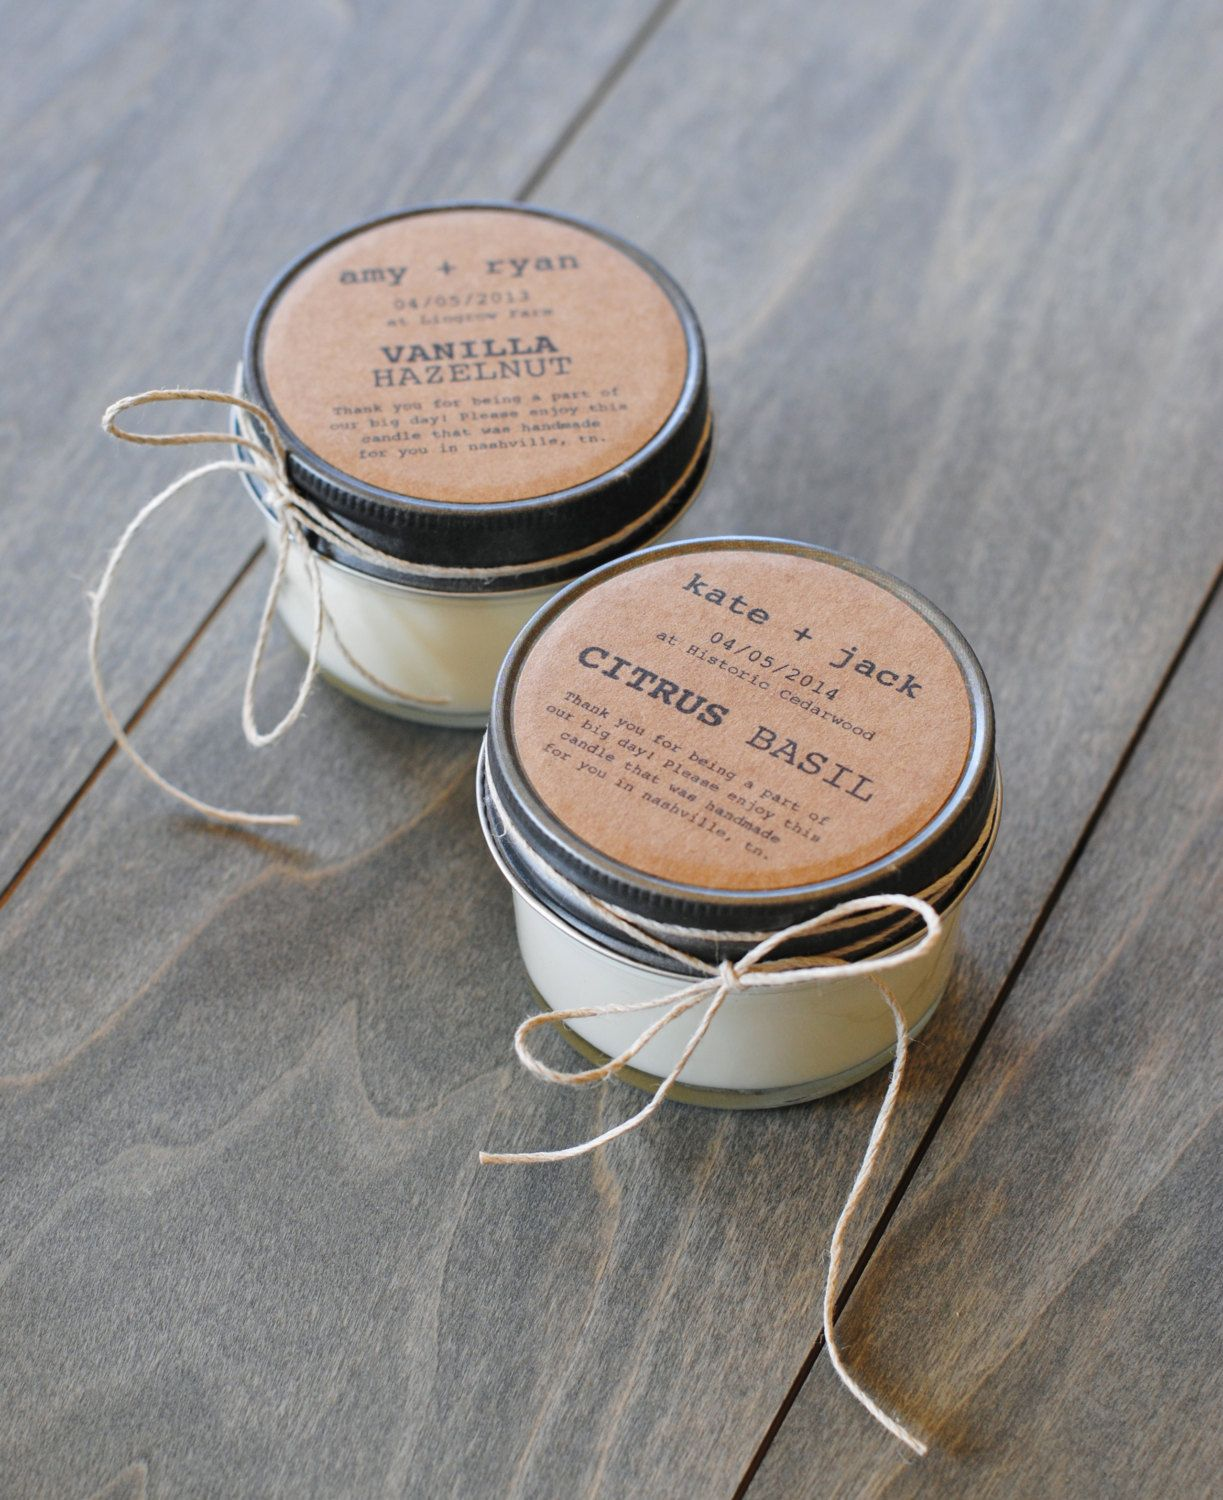 48 Eco-friendly Wedding Favors, Handmade Soy Candles With